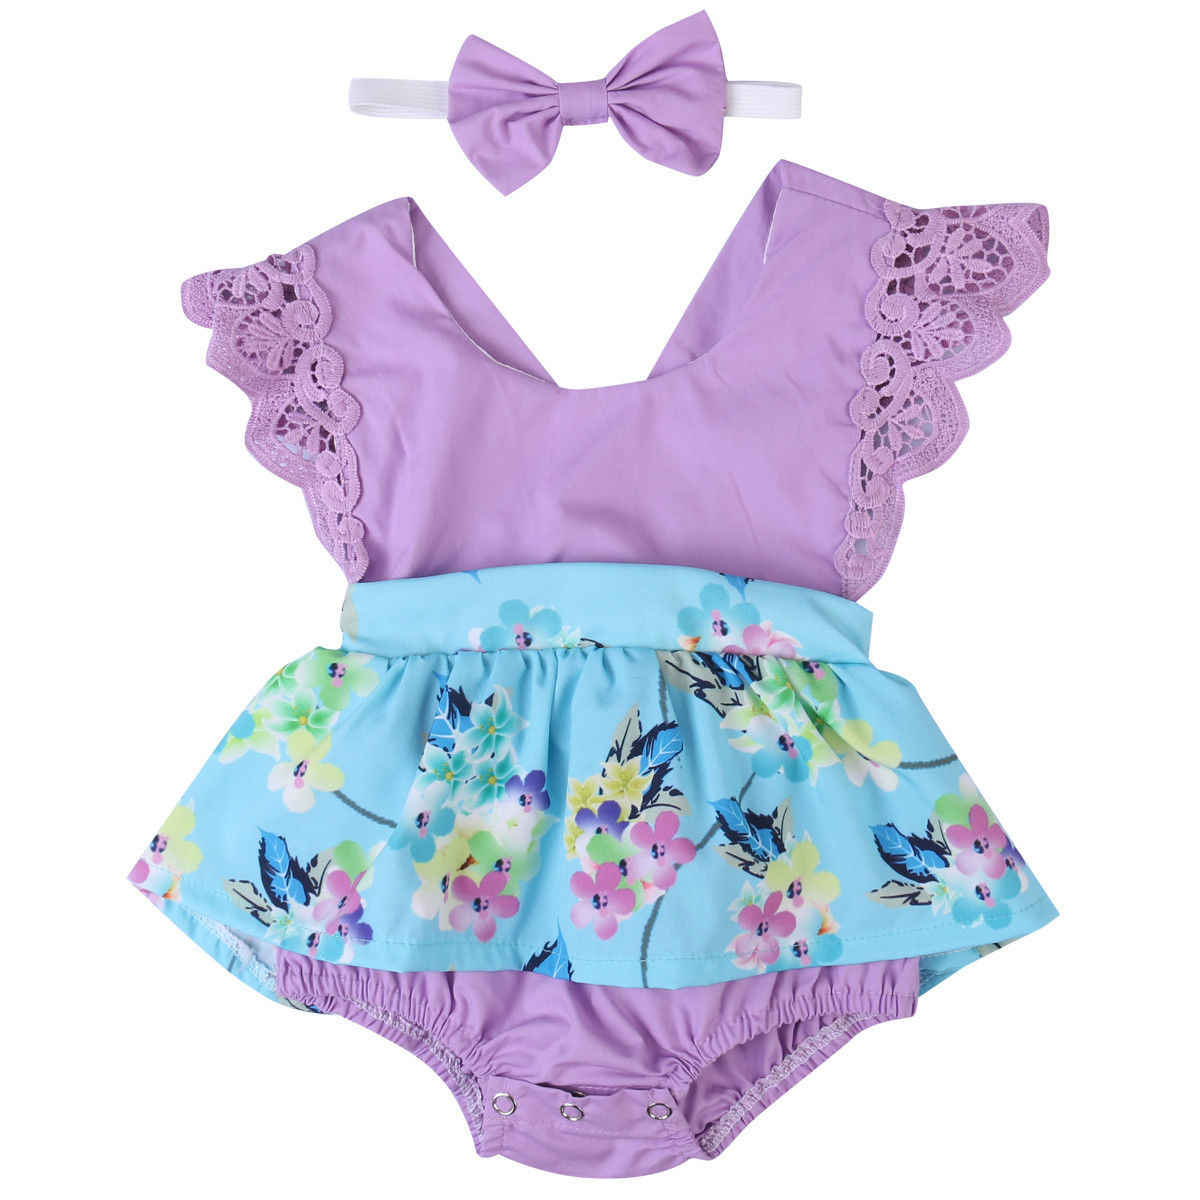 e58c2d36dbd4 Detail Feedback Questions about 2017 Summer Fashion Beautify Newborn Baby  Girls Clothes Floral Purple Blue Lace Romper Dress Jumpsuit Skirt + Headband  ...